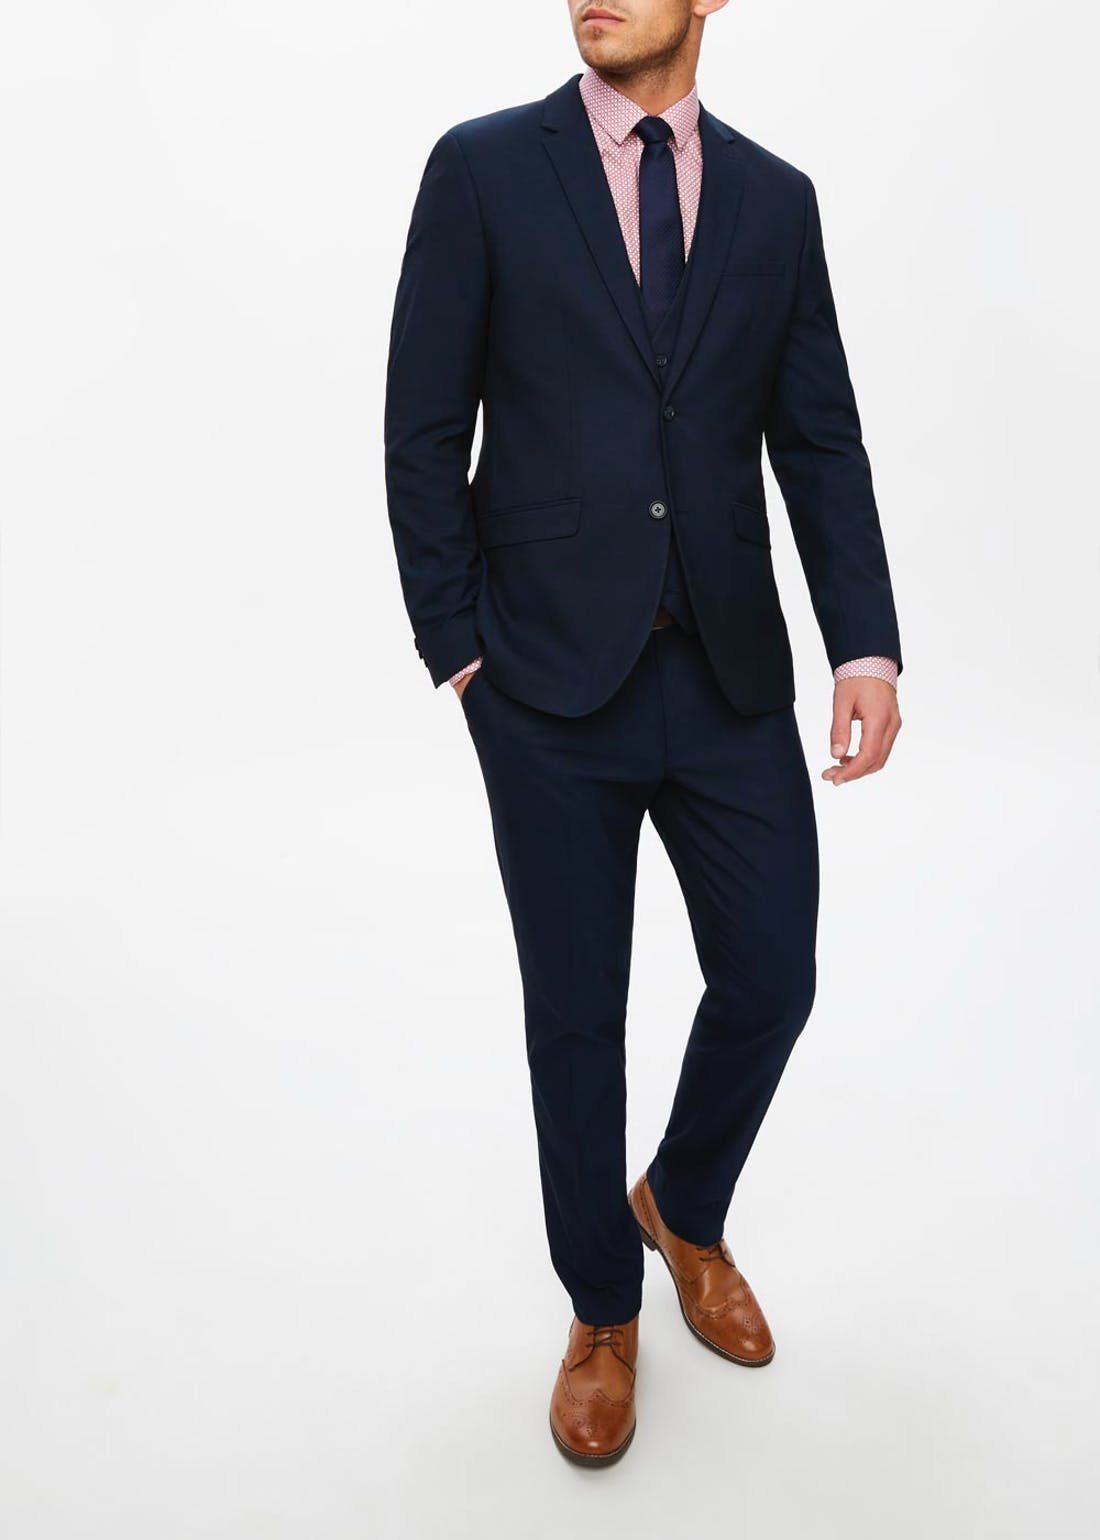 Taylor & Wright Jones Tailored Fit Suit Jacket